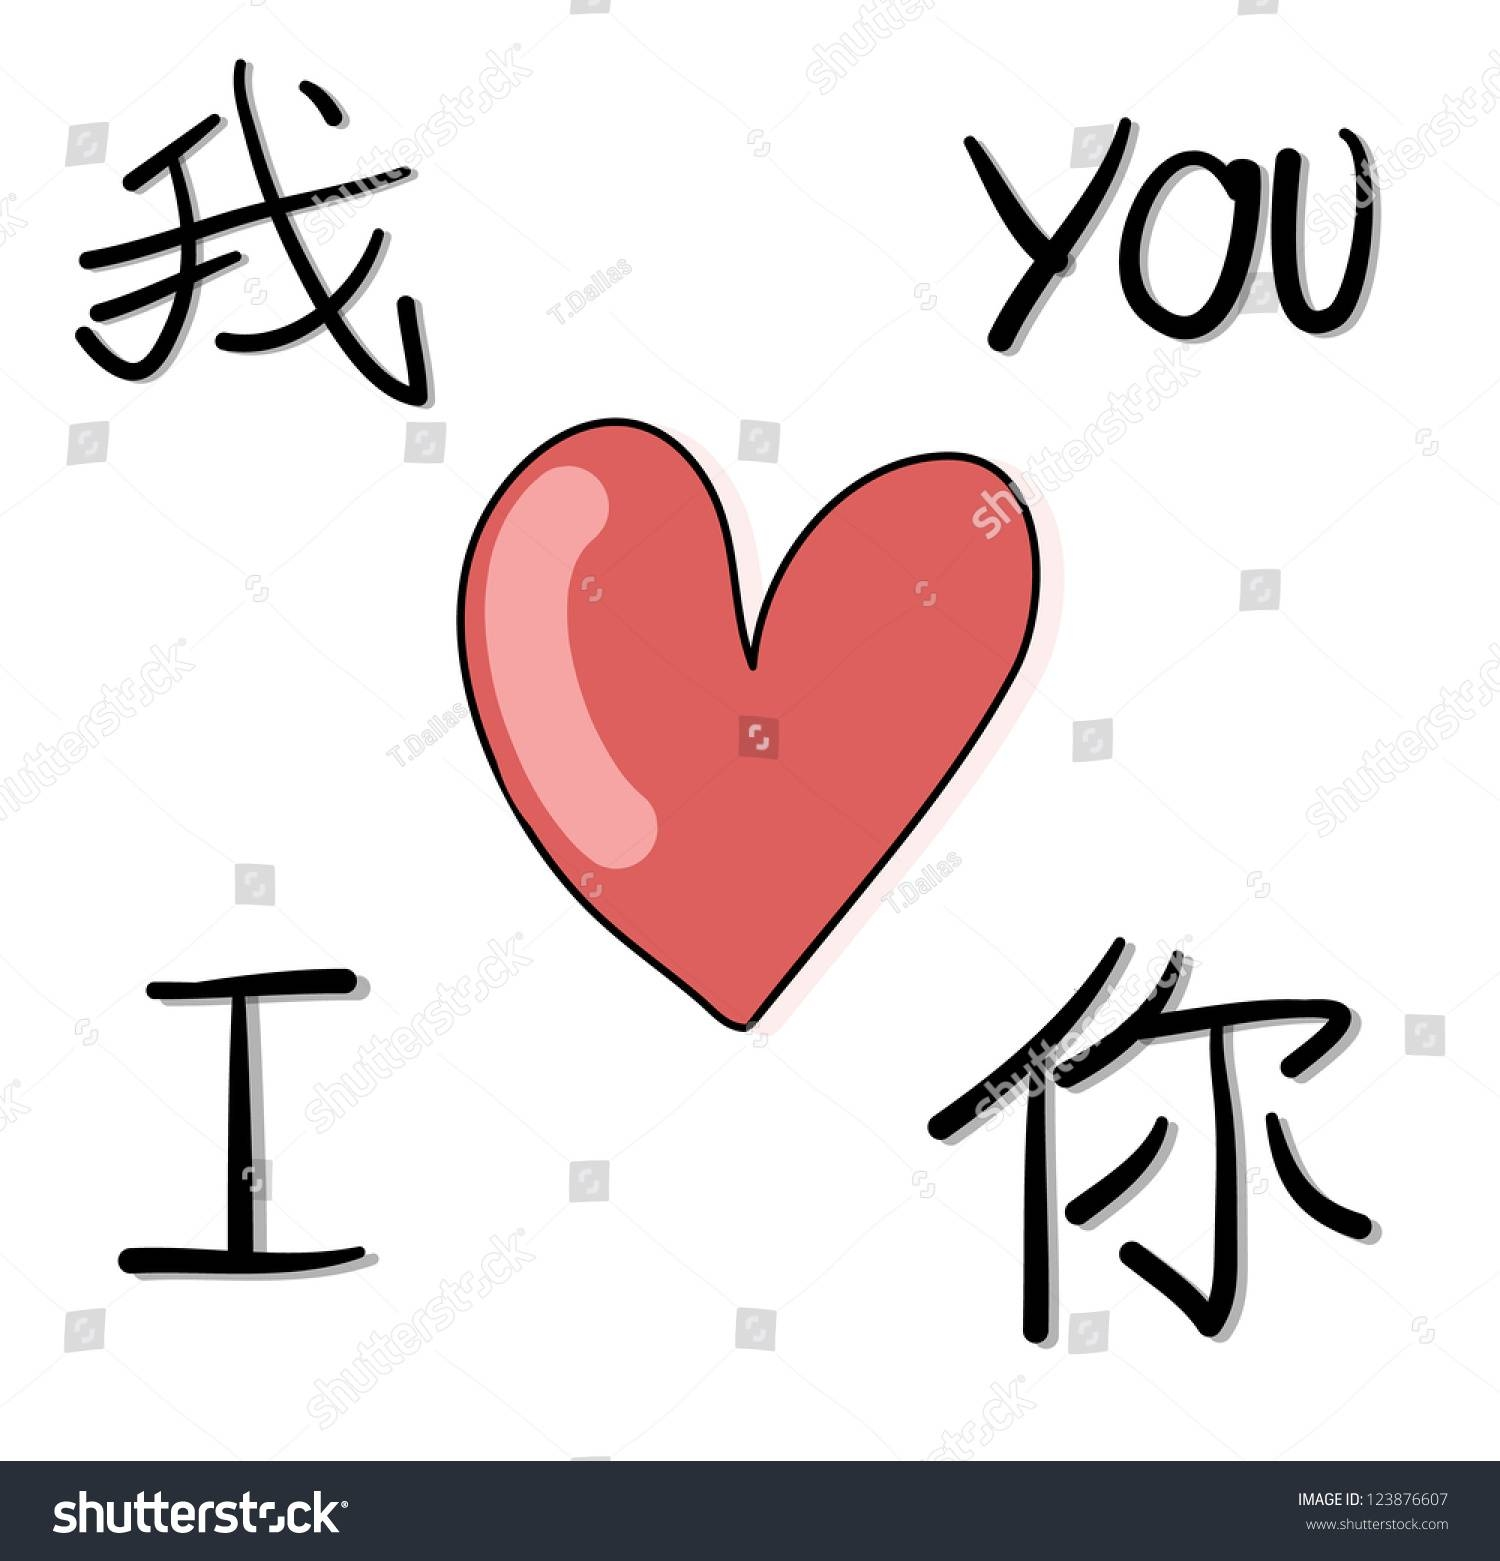 Chinese Love You Wo Ai Ni Vectores En Stock 123876607 – Shutterstock Intended For Best And Newest Wo Ai Ni In Chinese Wall Art (View 2 of 25)